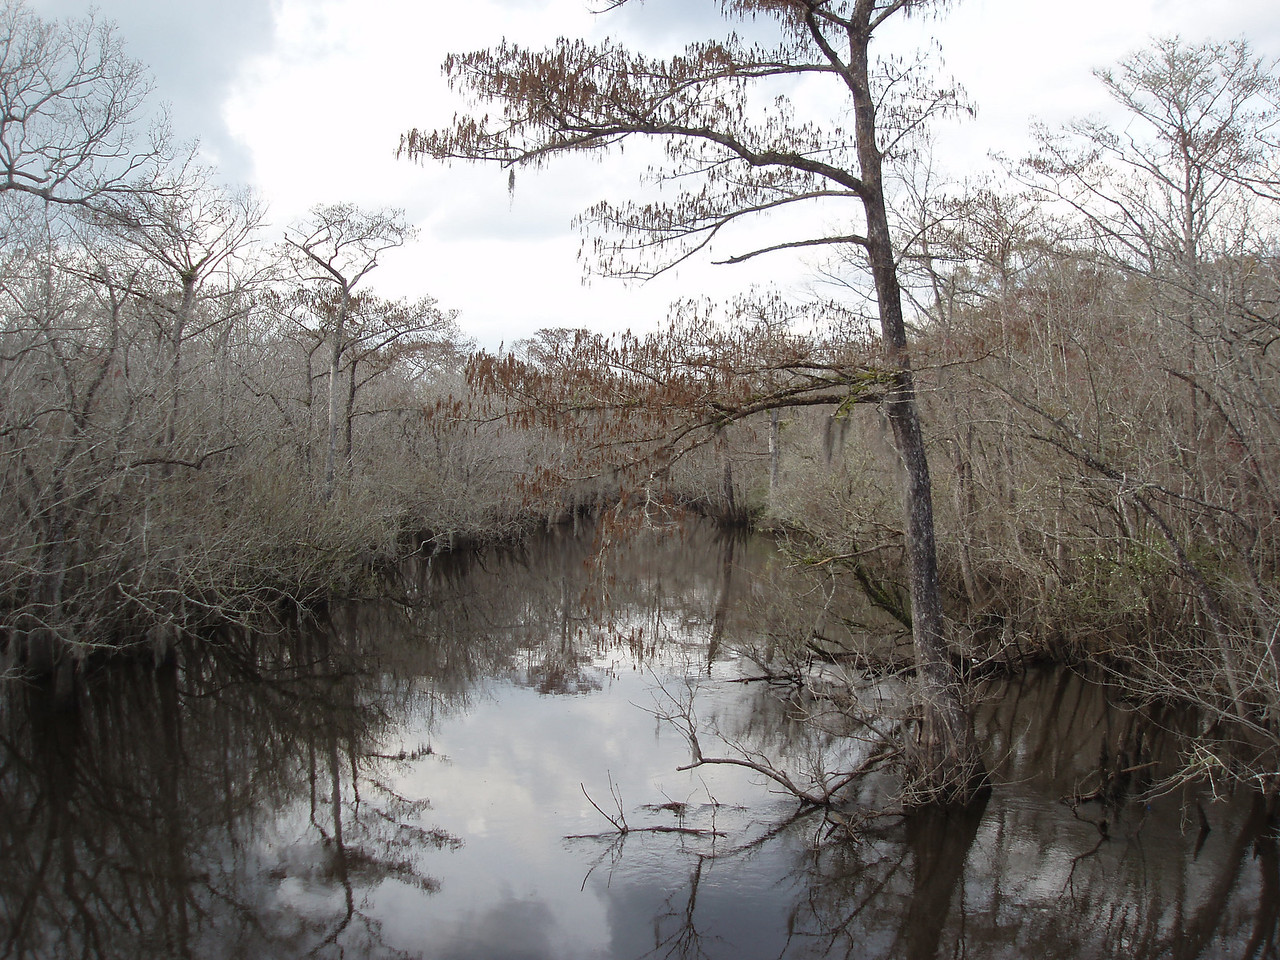 Ochlocknee River in winter<br /> PHOTO CREDIT: Robert Coveney / Florida Trail Association